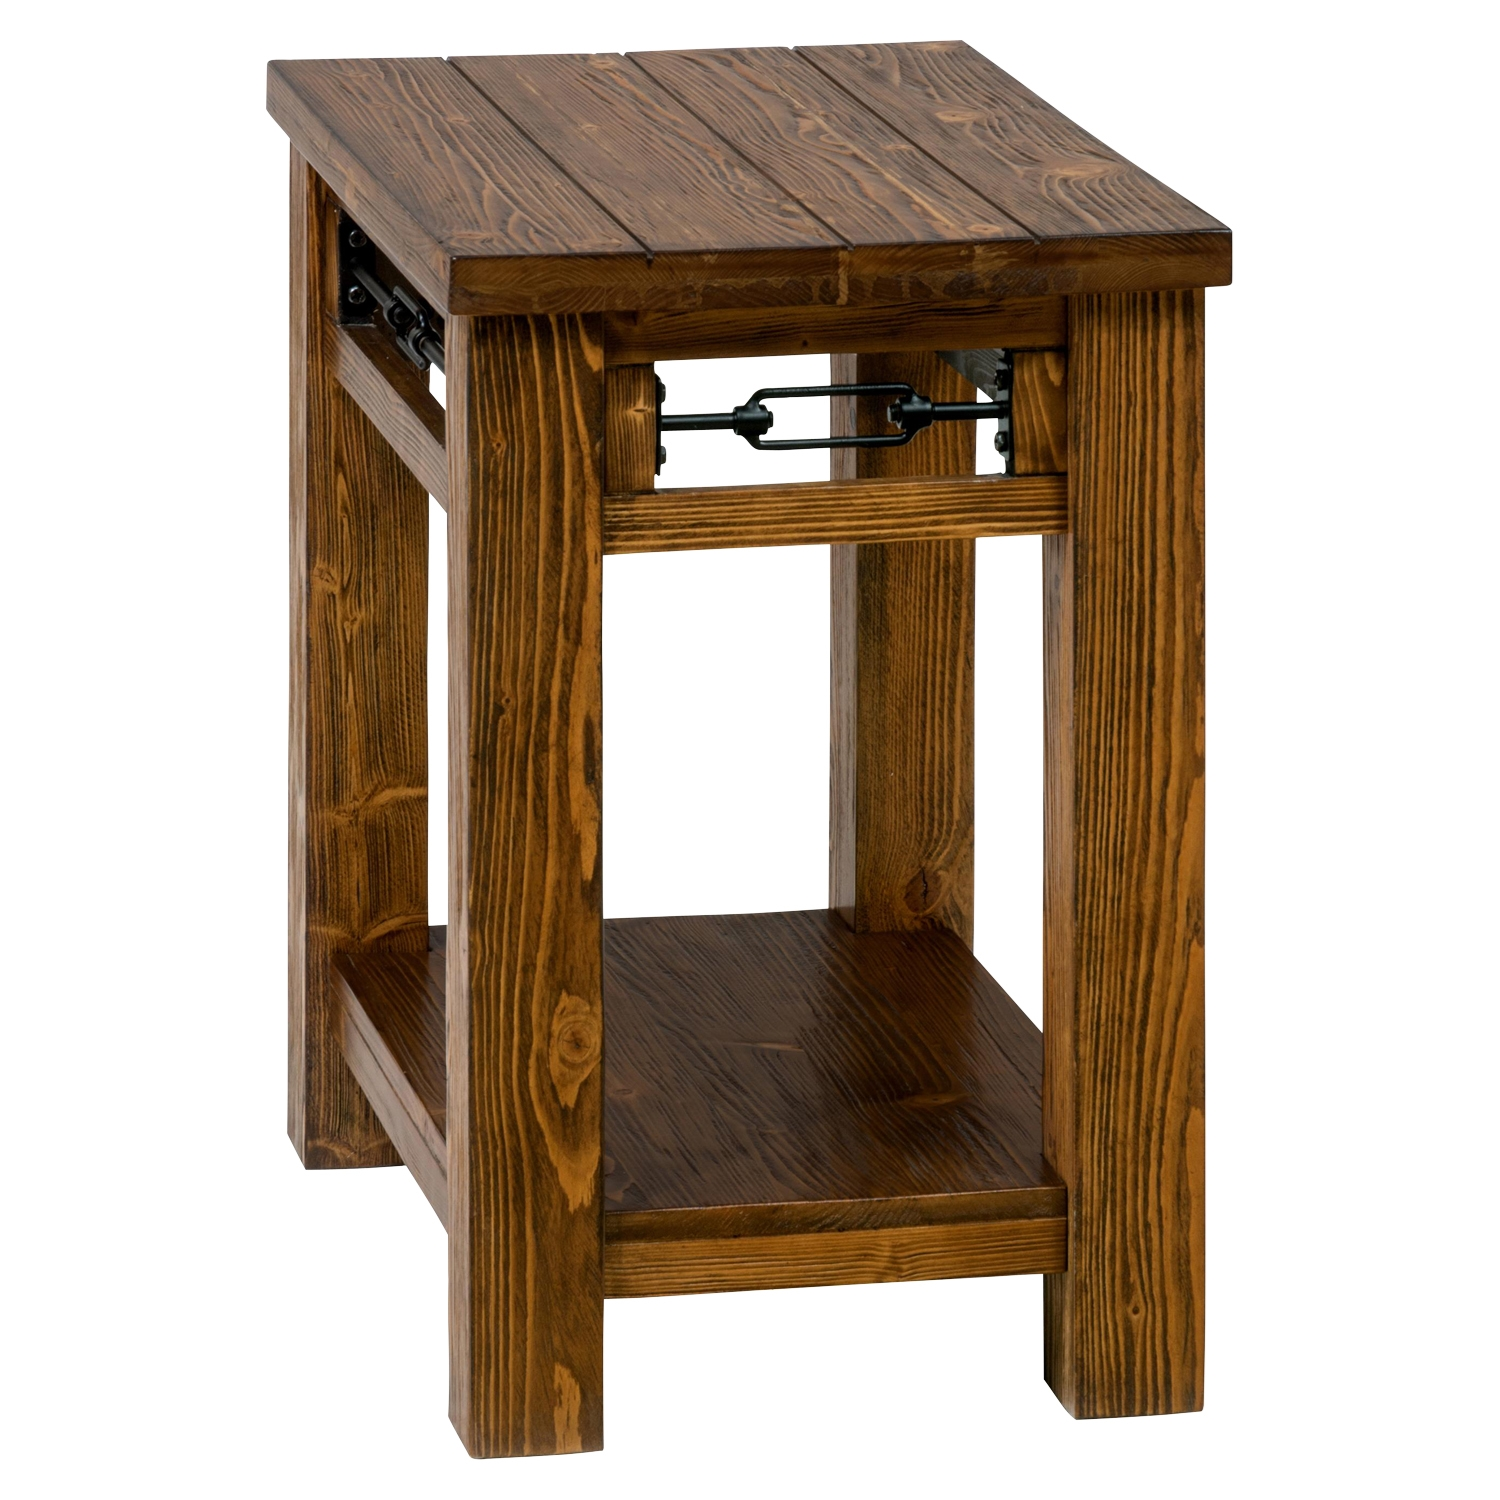 San Marcos Rectangle Chairside Table - JOFR-463-7